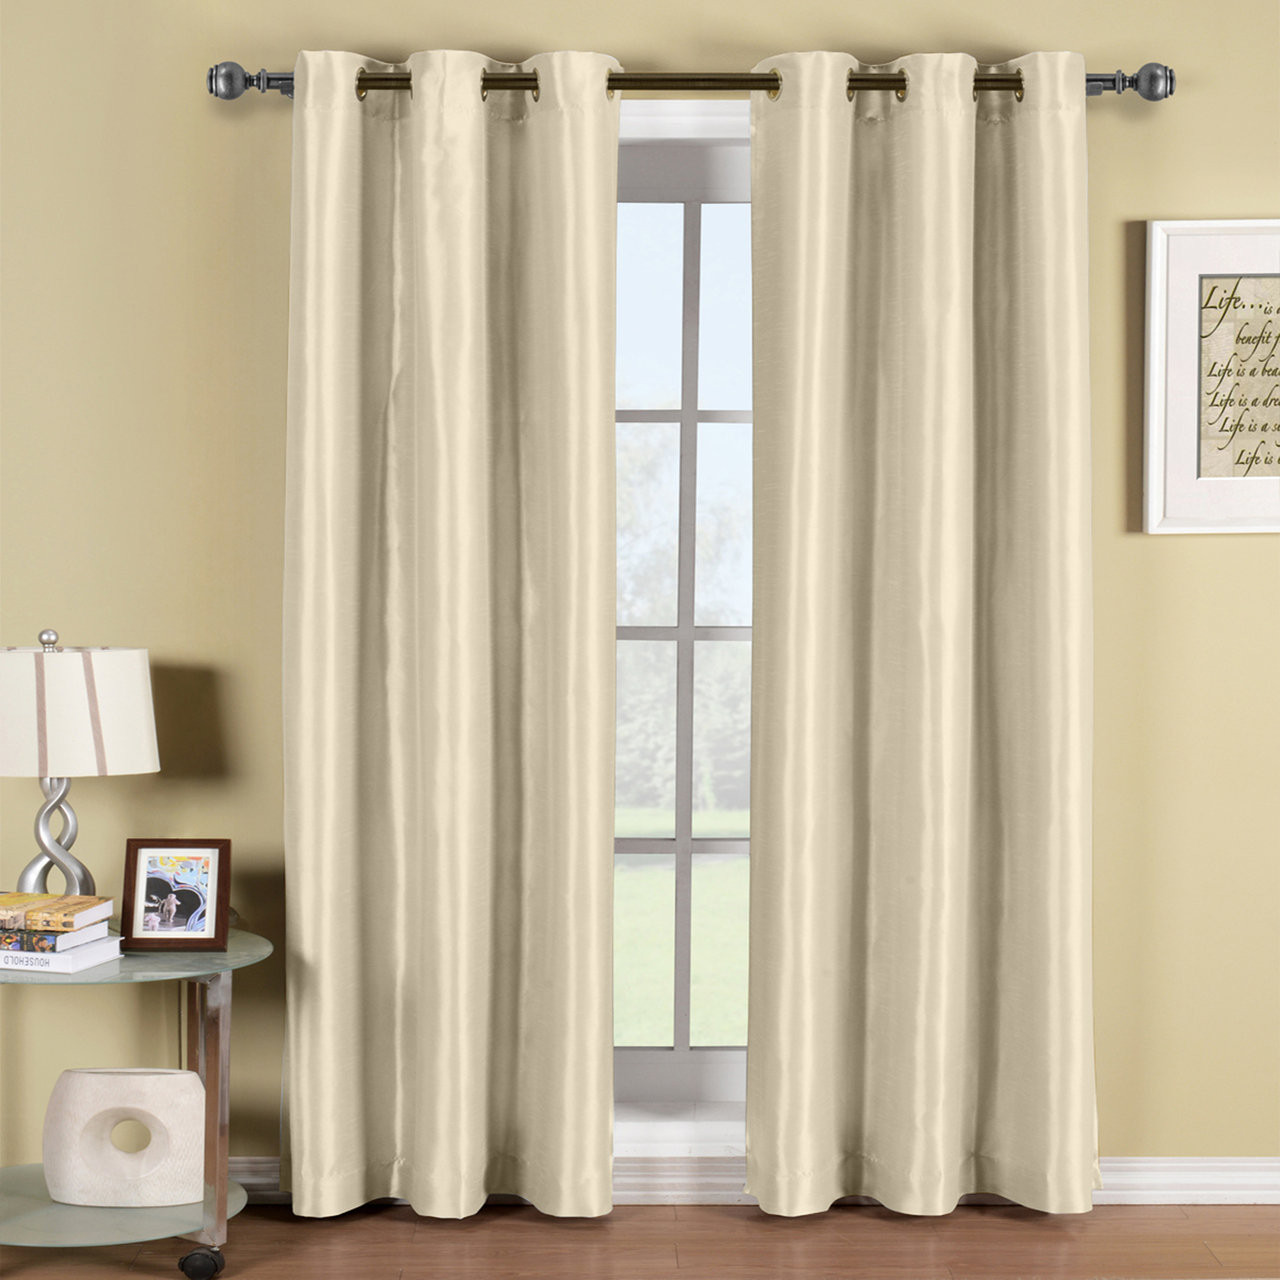 panel navy for length grommet p microfiber curtain the eclipse grommets drapes home curtains depot blackout in